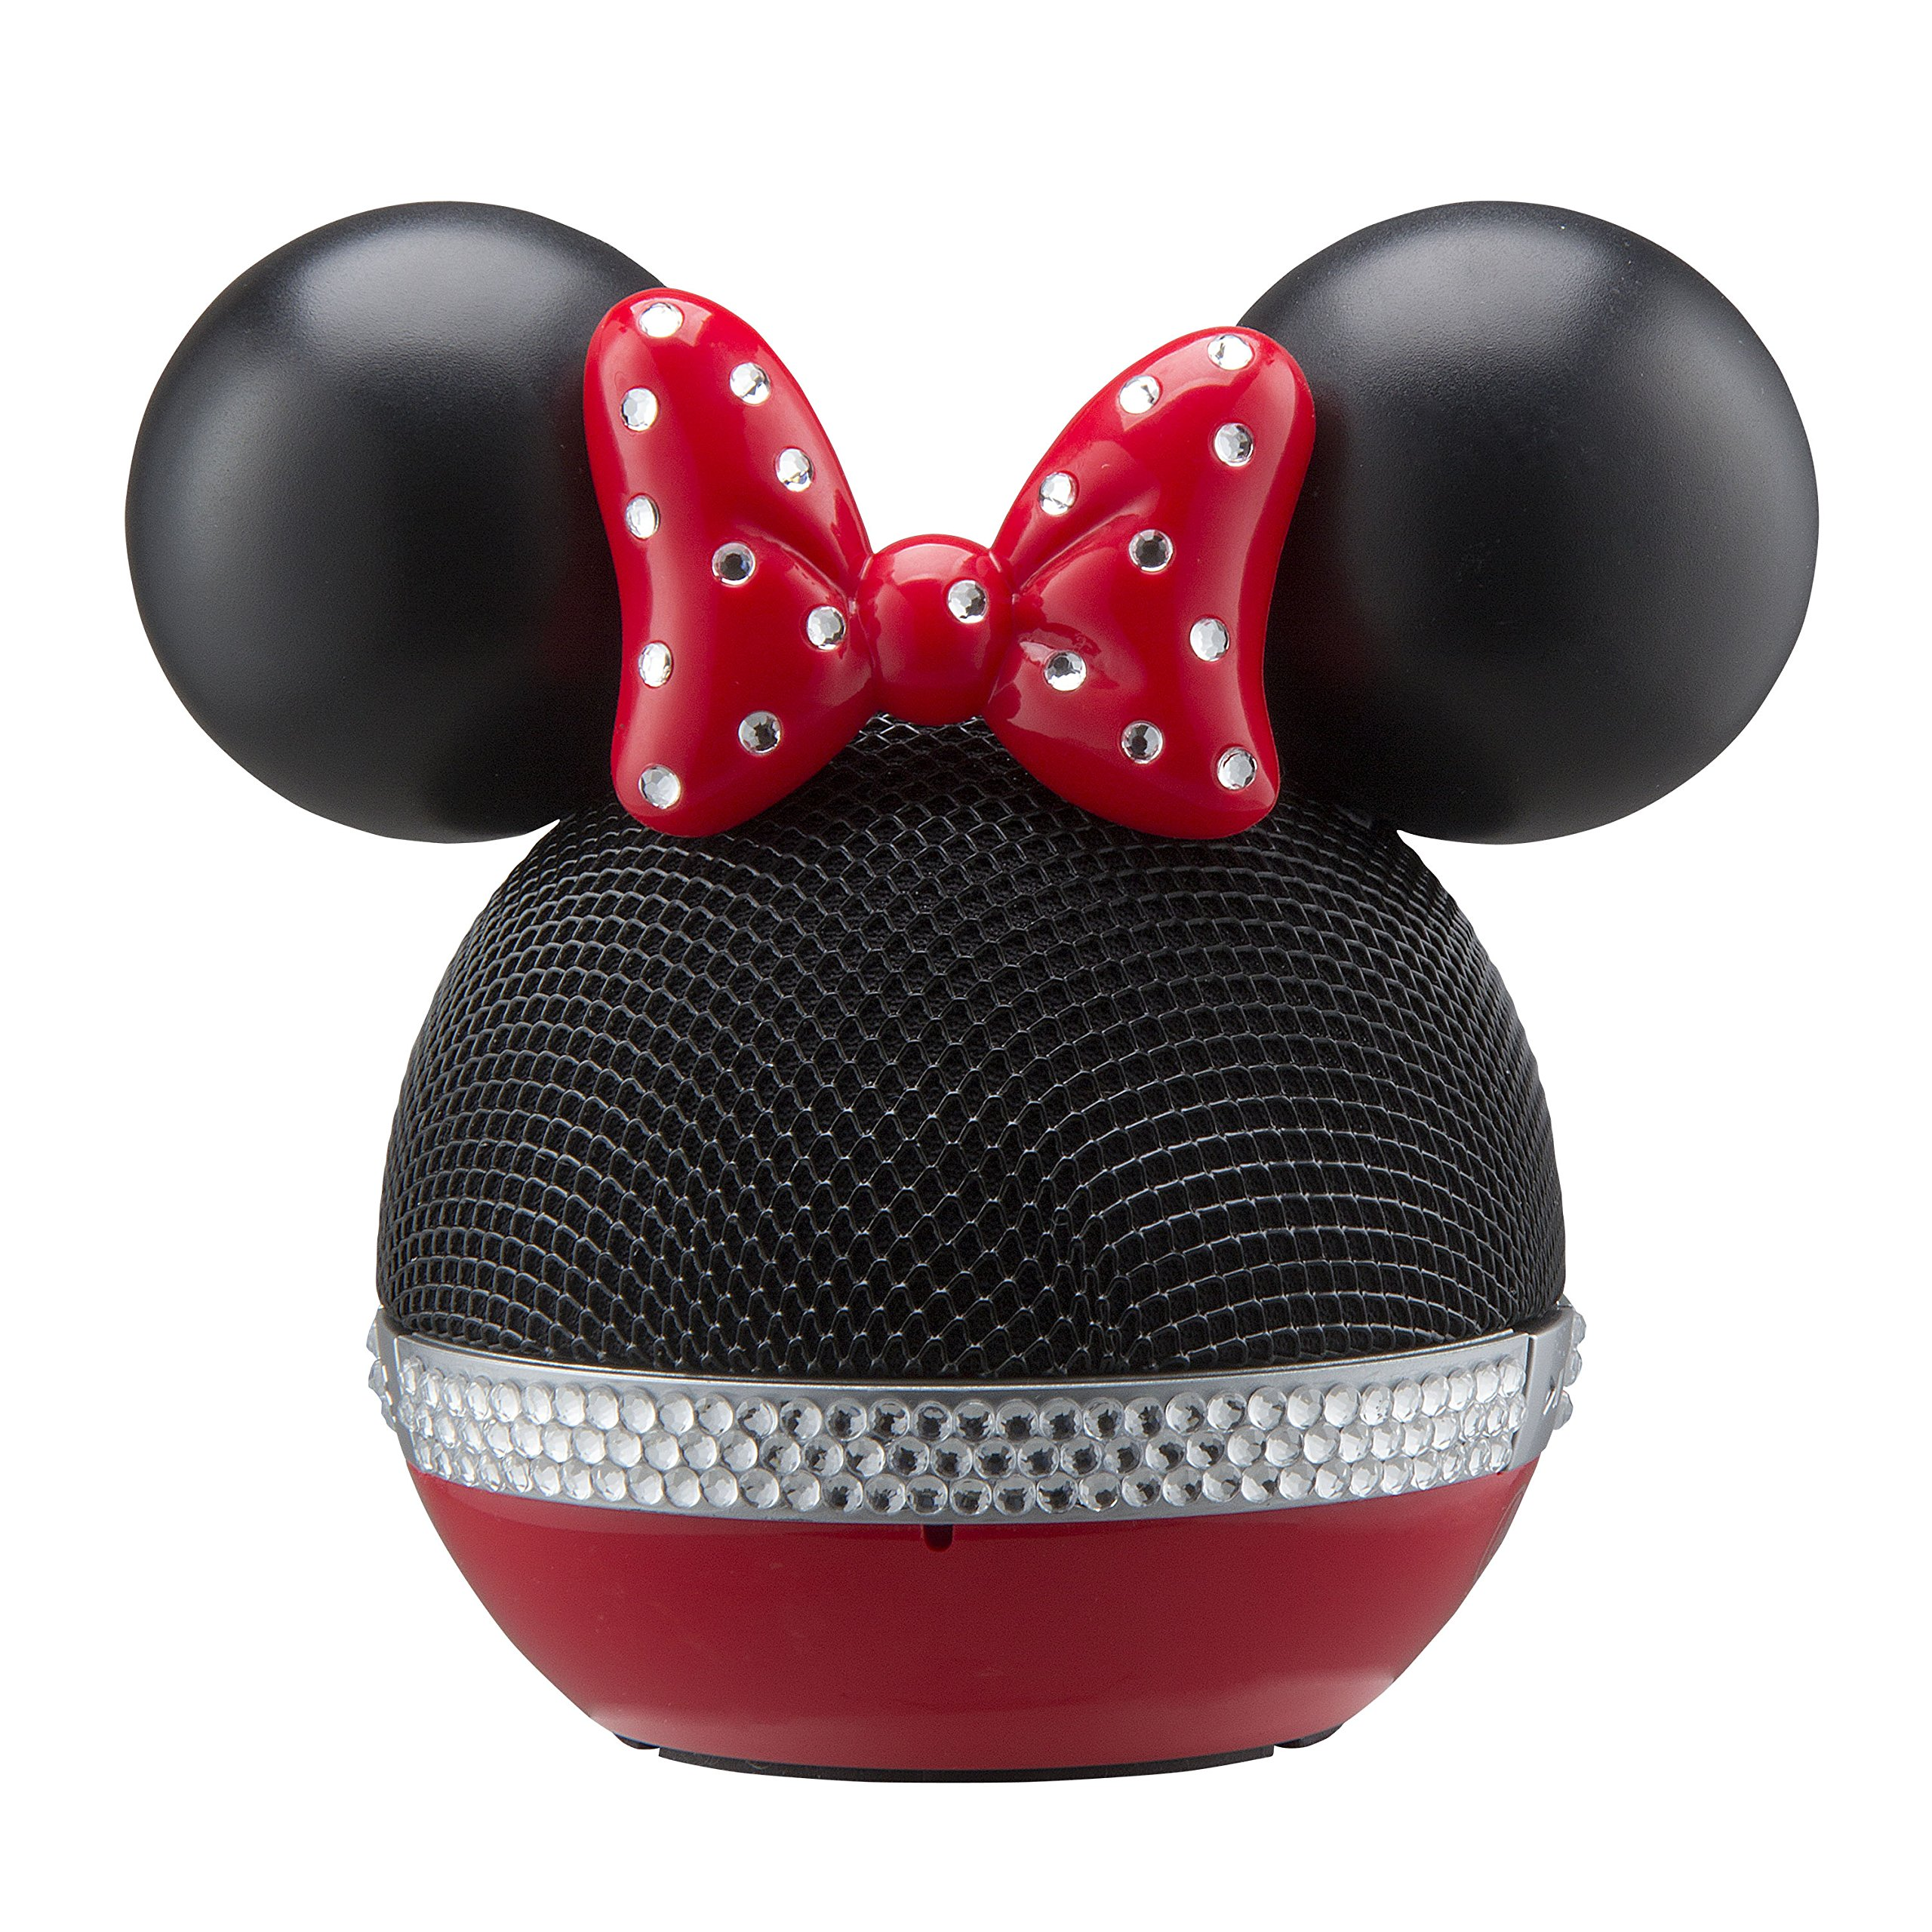 Disney Minnie Mouse Wireless Rechargeable Bluetooth Speaker.